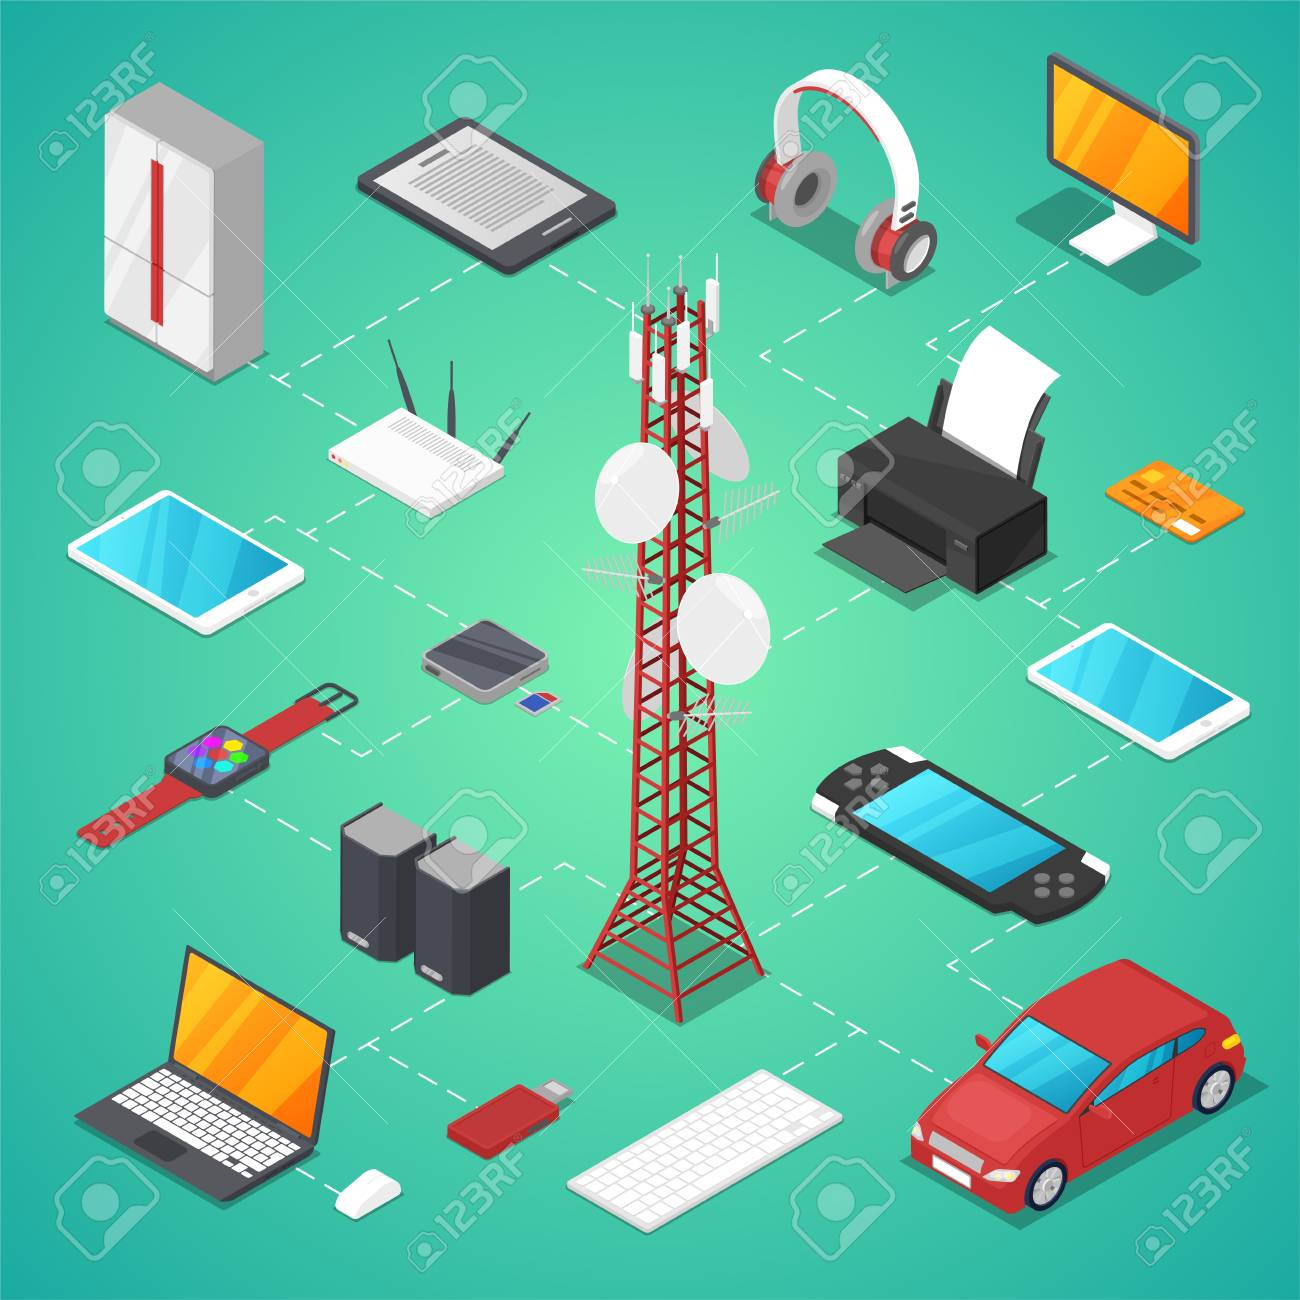 How to setup a wireless router with a tablet gallery wiring table wireless technologies isometric 3d vector set tv tower smart vector wireless technologies isometric 3d vector set keyboard keysfo Image collections